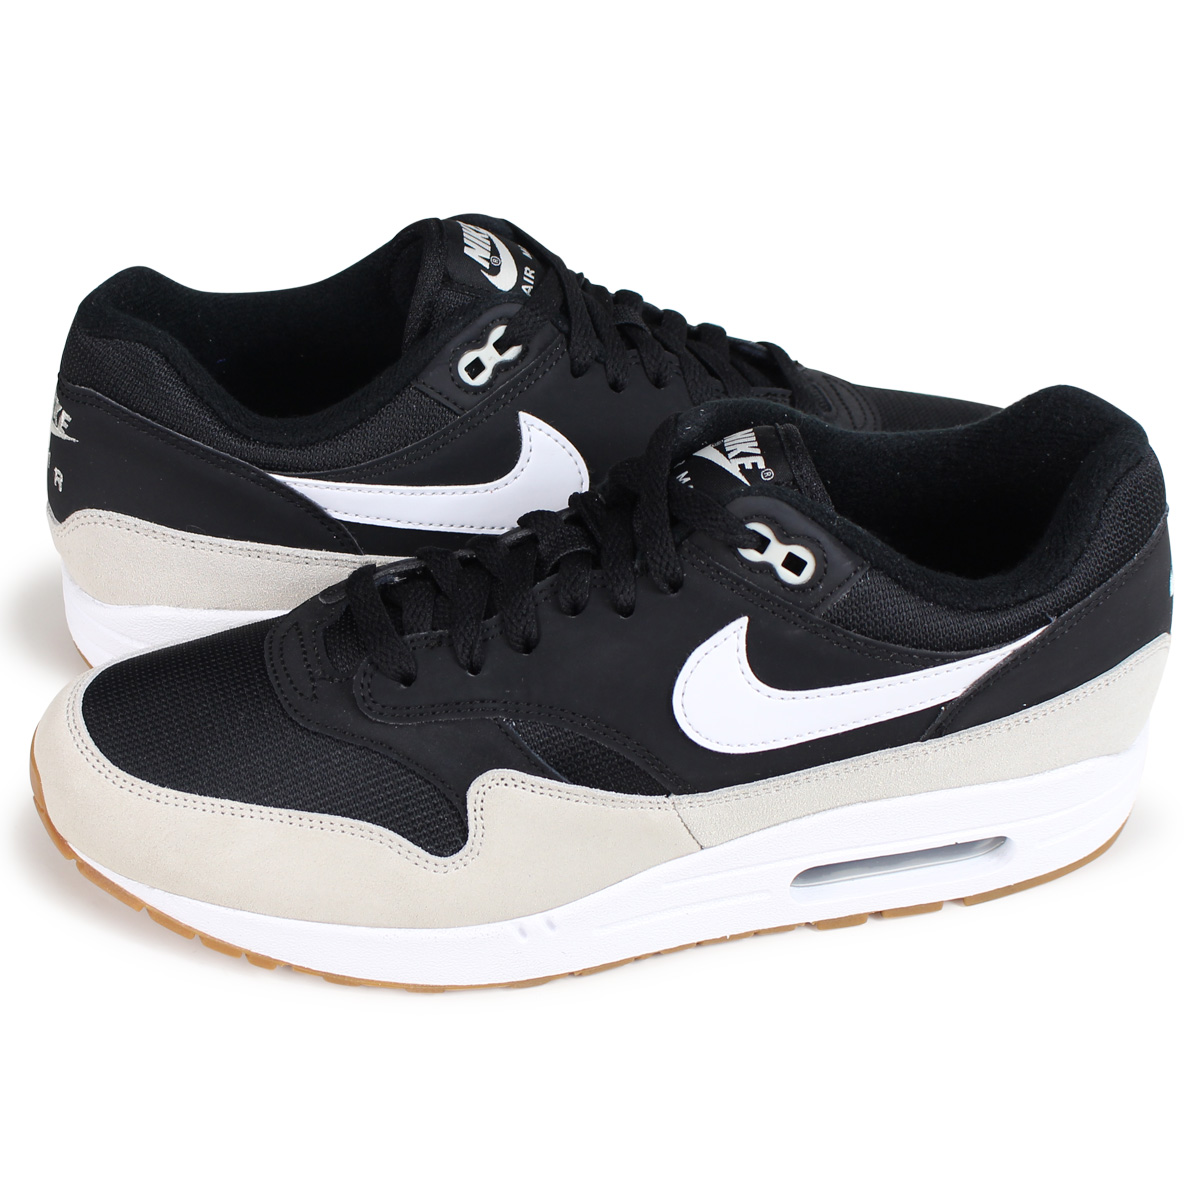 NIKE AIR MAX 1 Kie Ney AMAX 1 sneakers men AH8145 009 black [load planned Shinnyu load in reservation product 1022 containing]